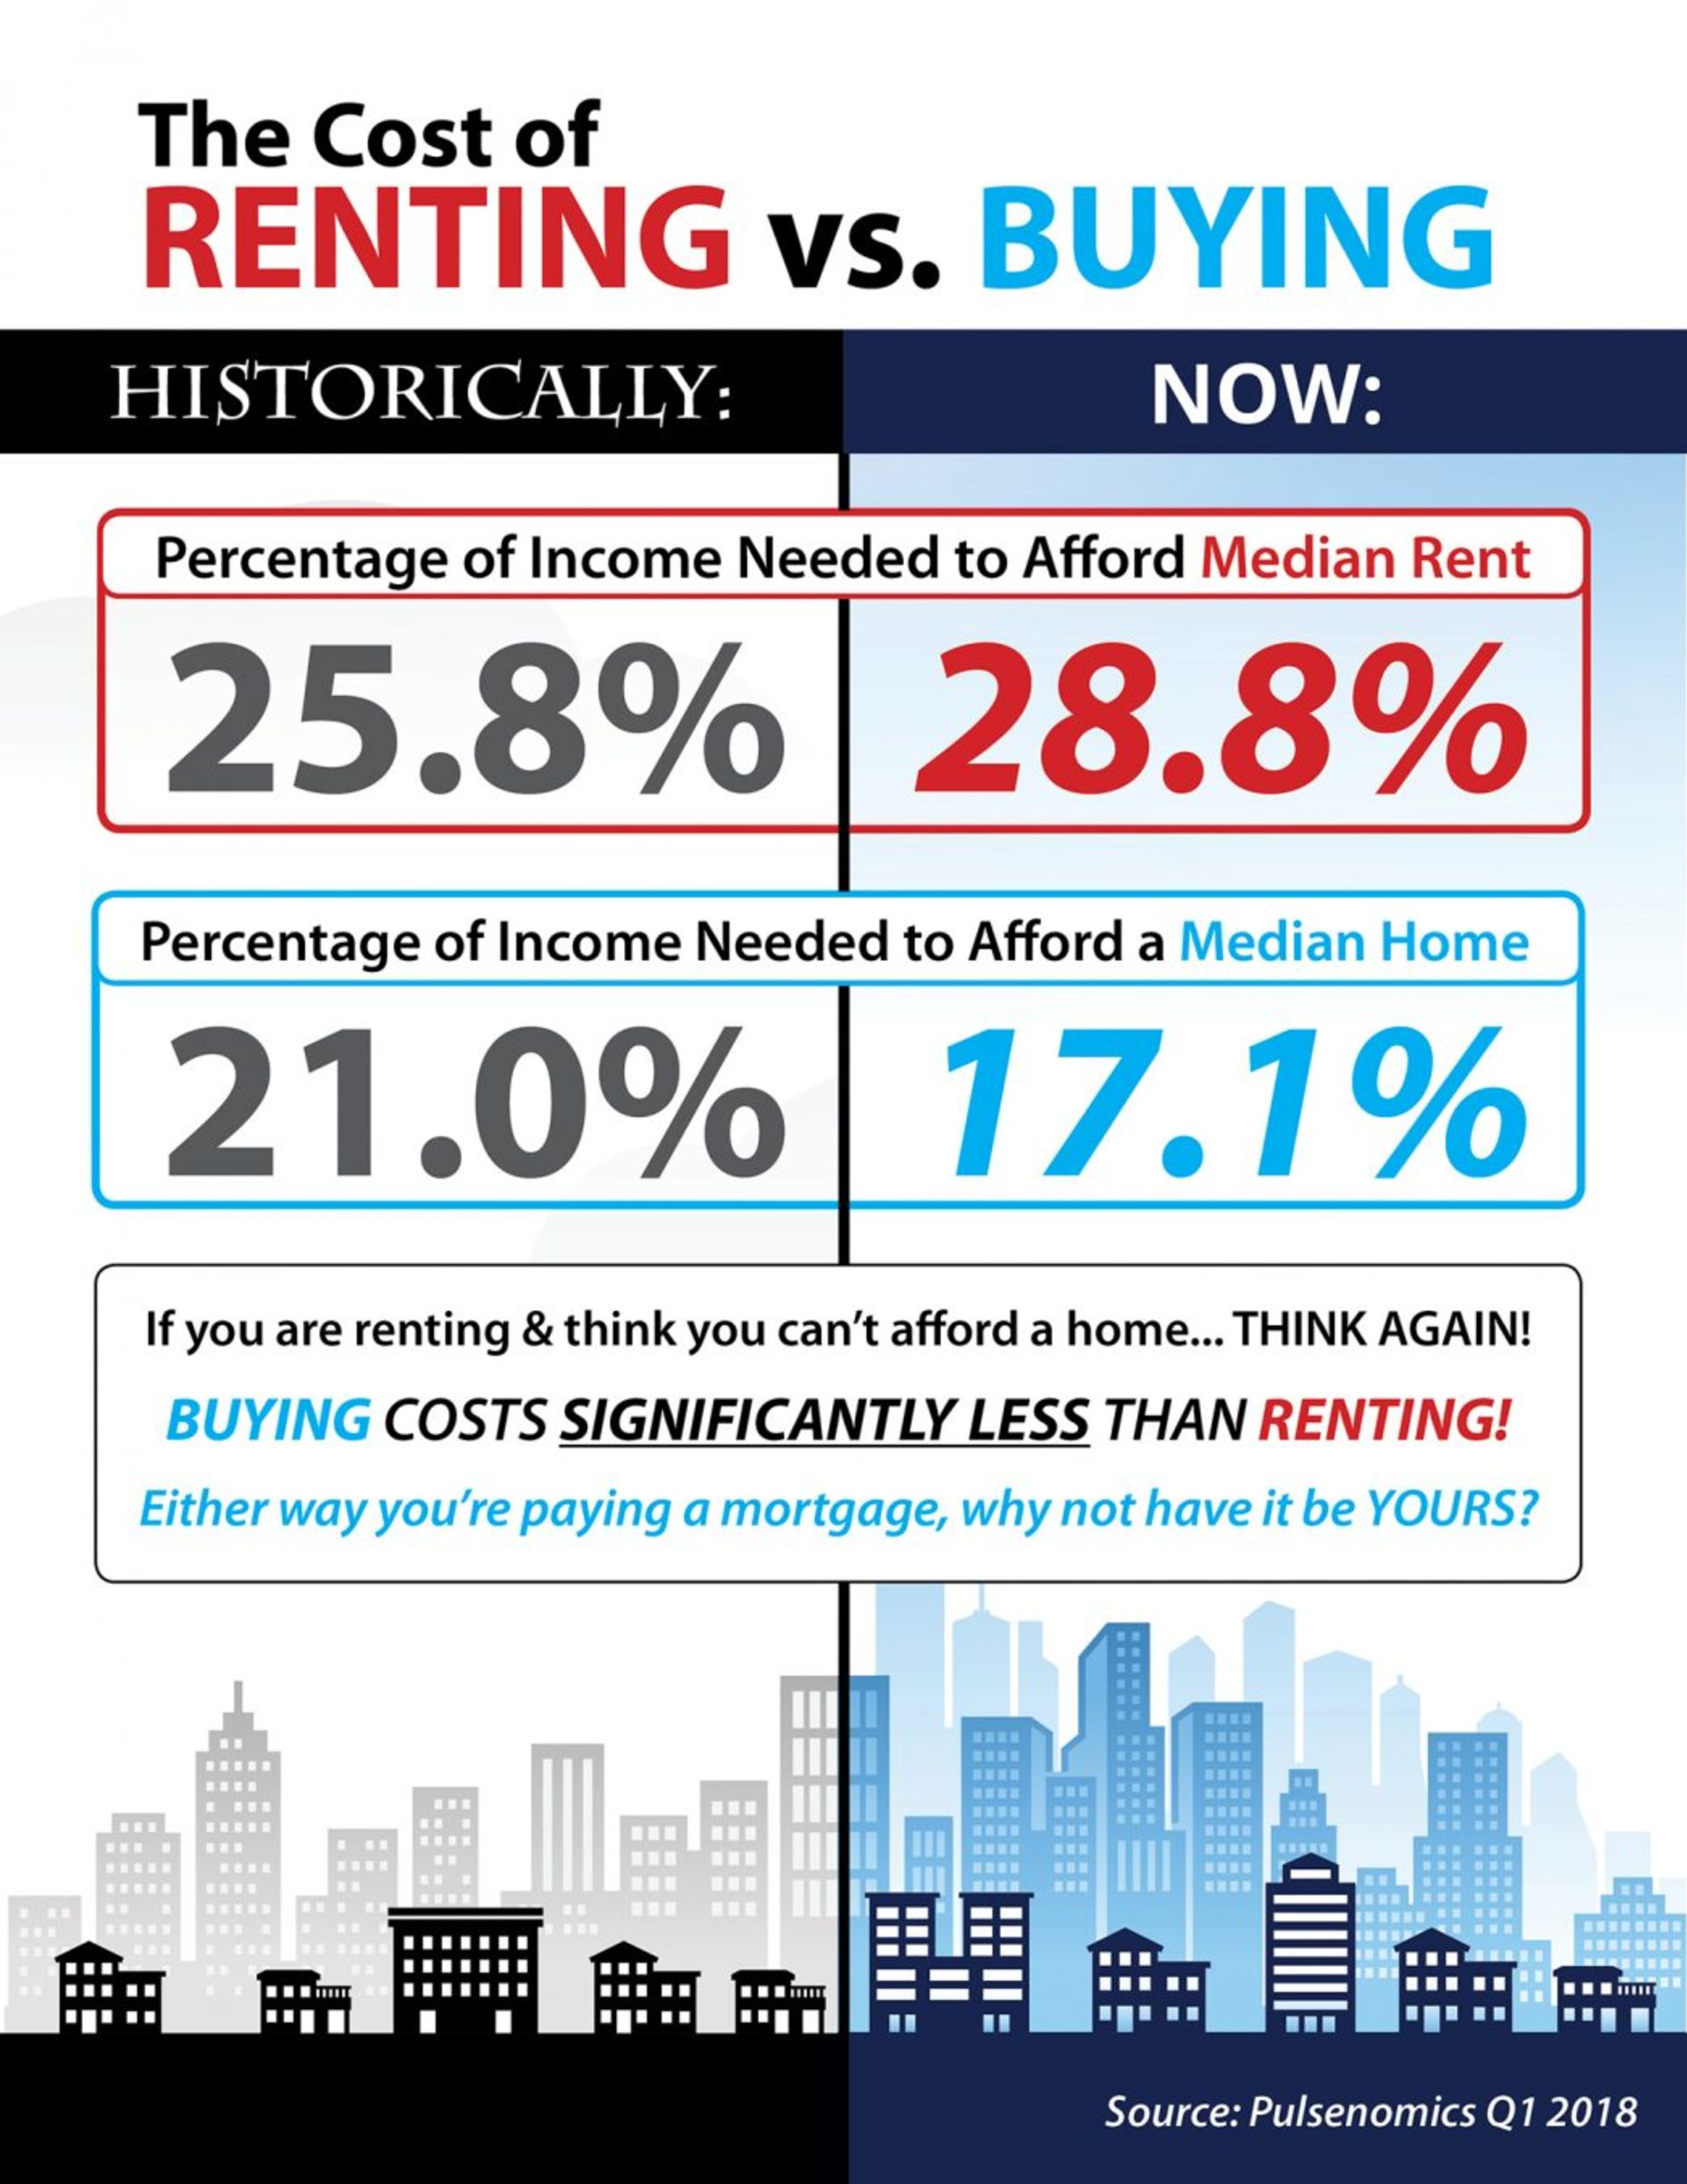 The Cost of Renting vs. Buying